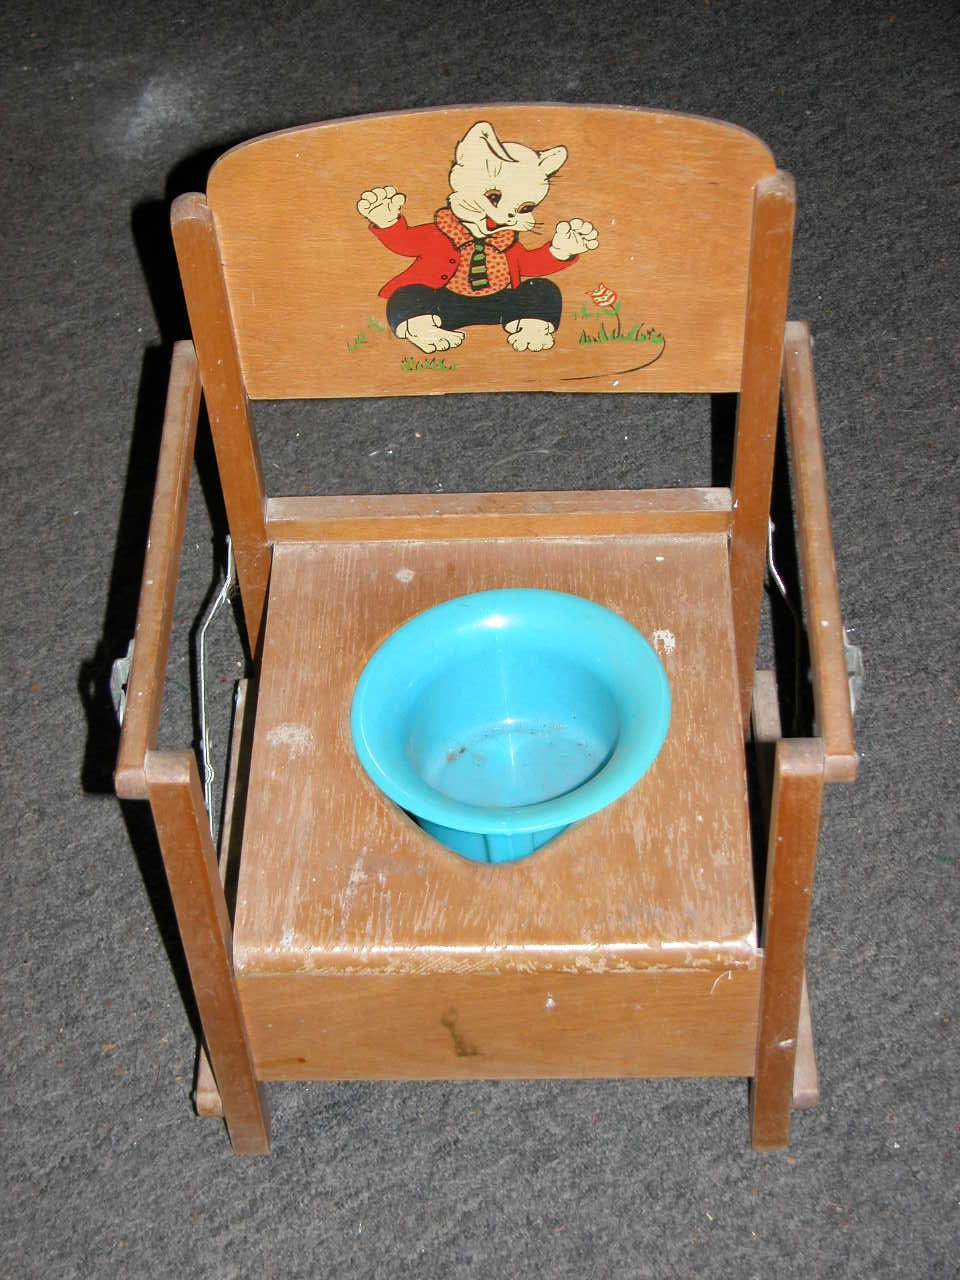 Vintage Toy Potty : Antique potty chair s vintage child wooden